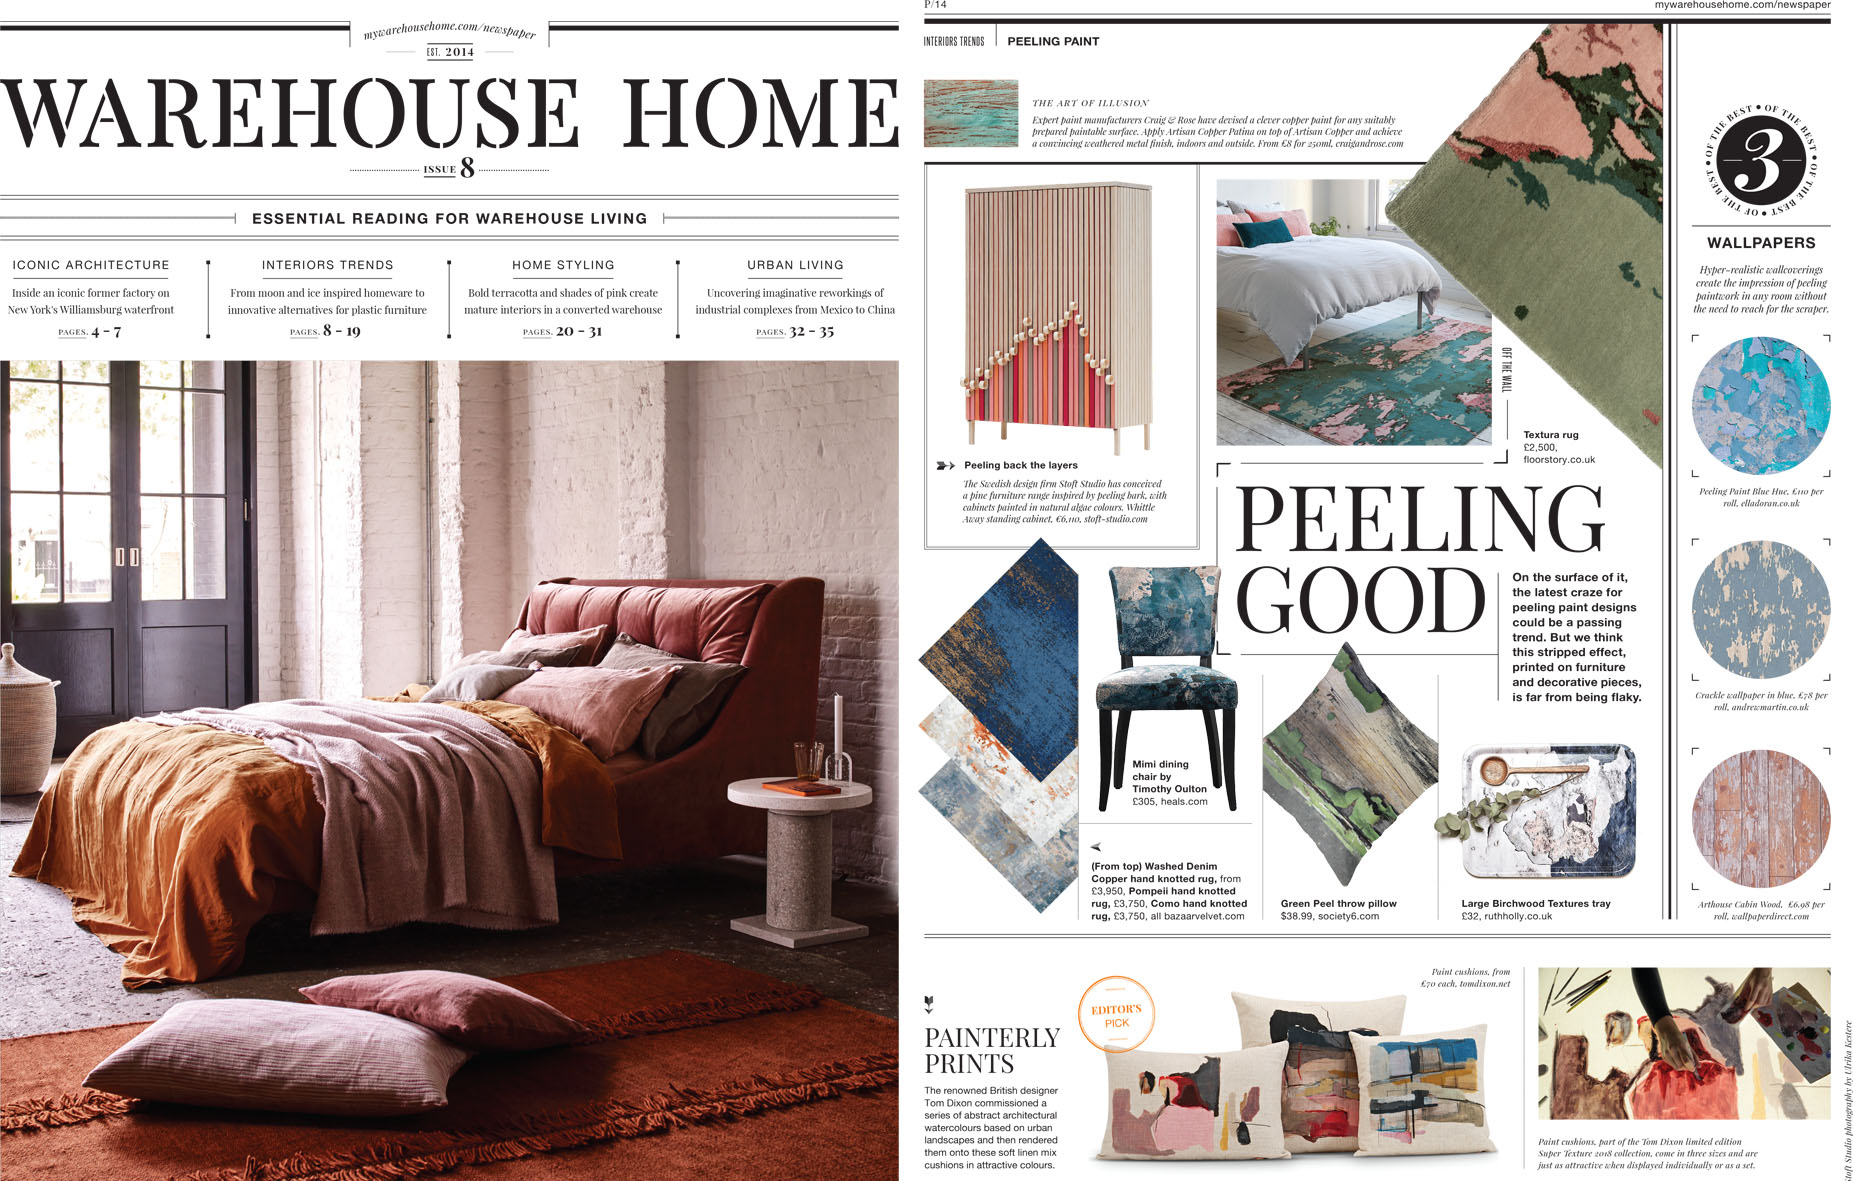 Warehouse Home Issue 8 - Ruth Holly's large birchwood textures tray was featured in issue 8 of the bi-annual design magazine Warehouse Home.Providing essential interior design inspiration for loft apartments and warehouse conversions as well as decorating ideas for incorporating vintage, industrial and reclaimed furniture in a modern home.https://mywarehousehome.com